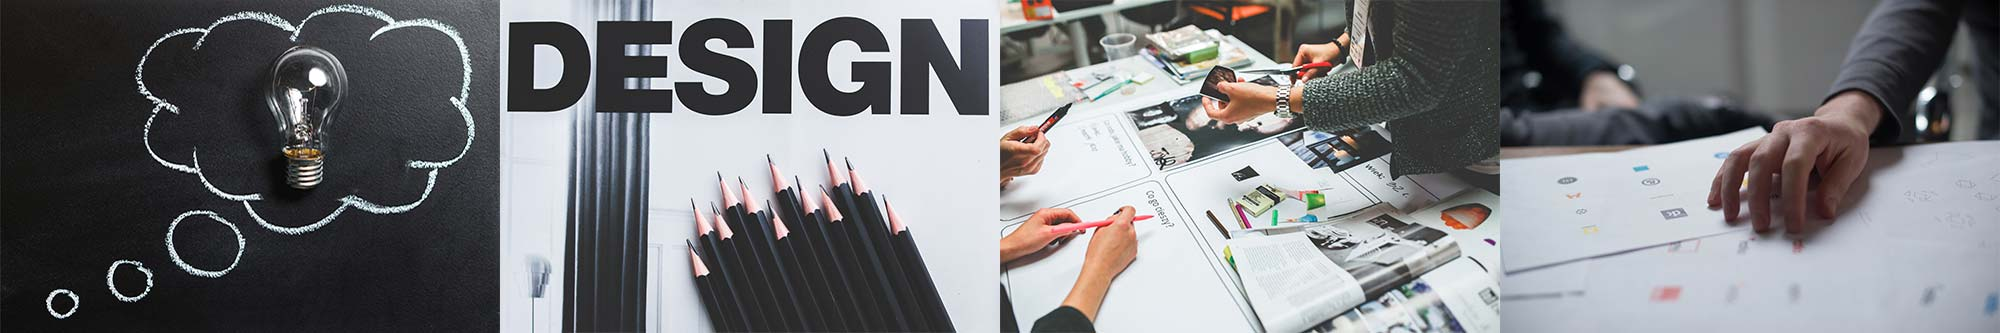 Corporate Design und Logogestaltung - Ihre Corporate Design Agentur aus Berlin